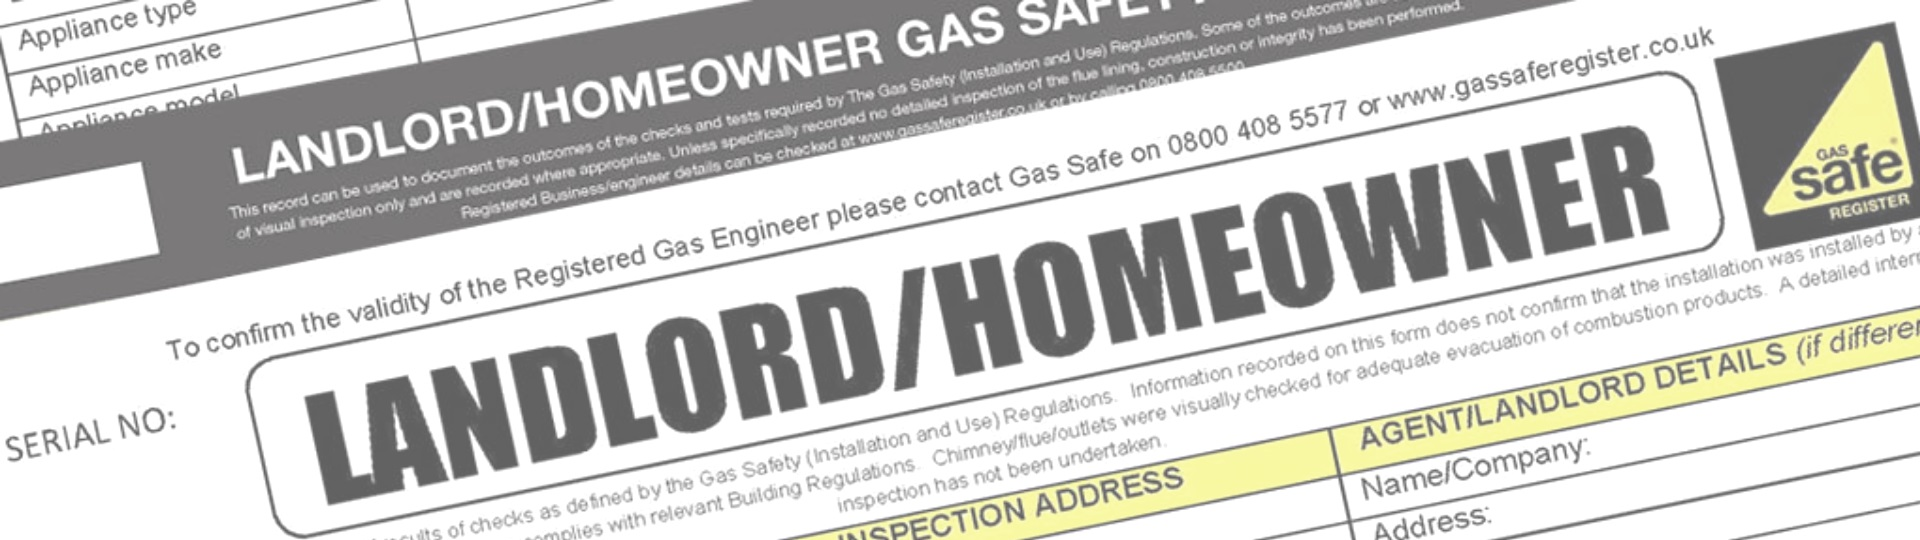 Gas Saftey Certificates Brislington